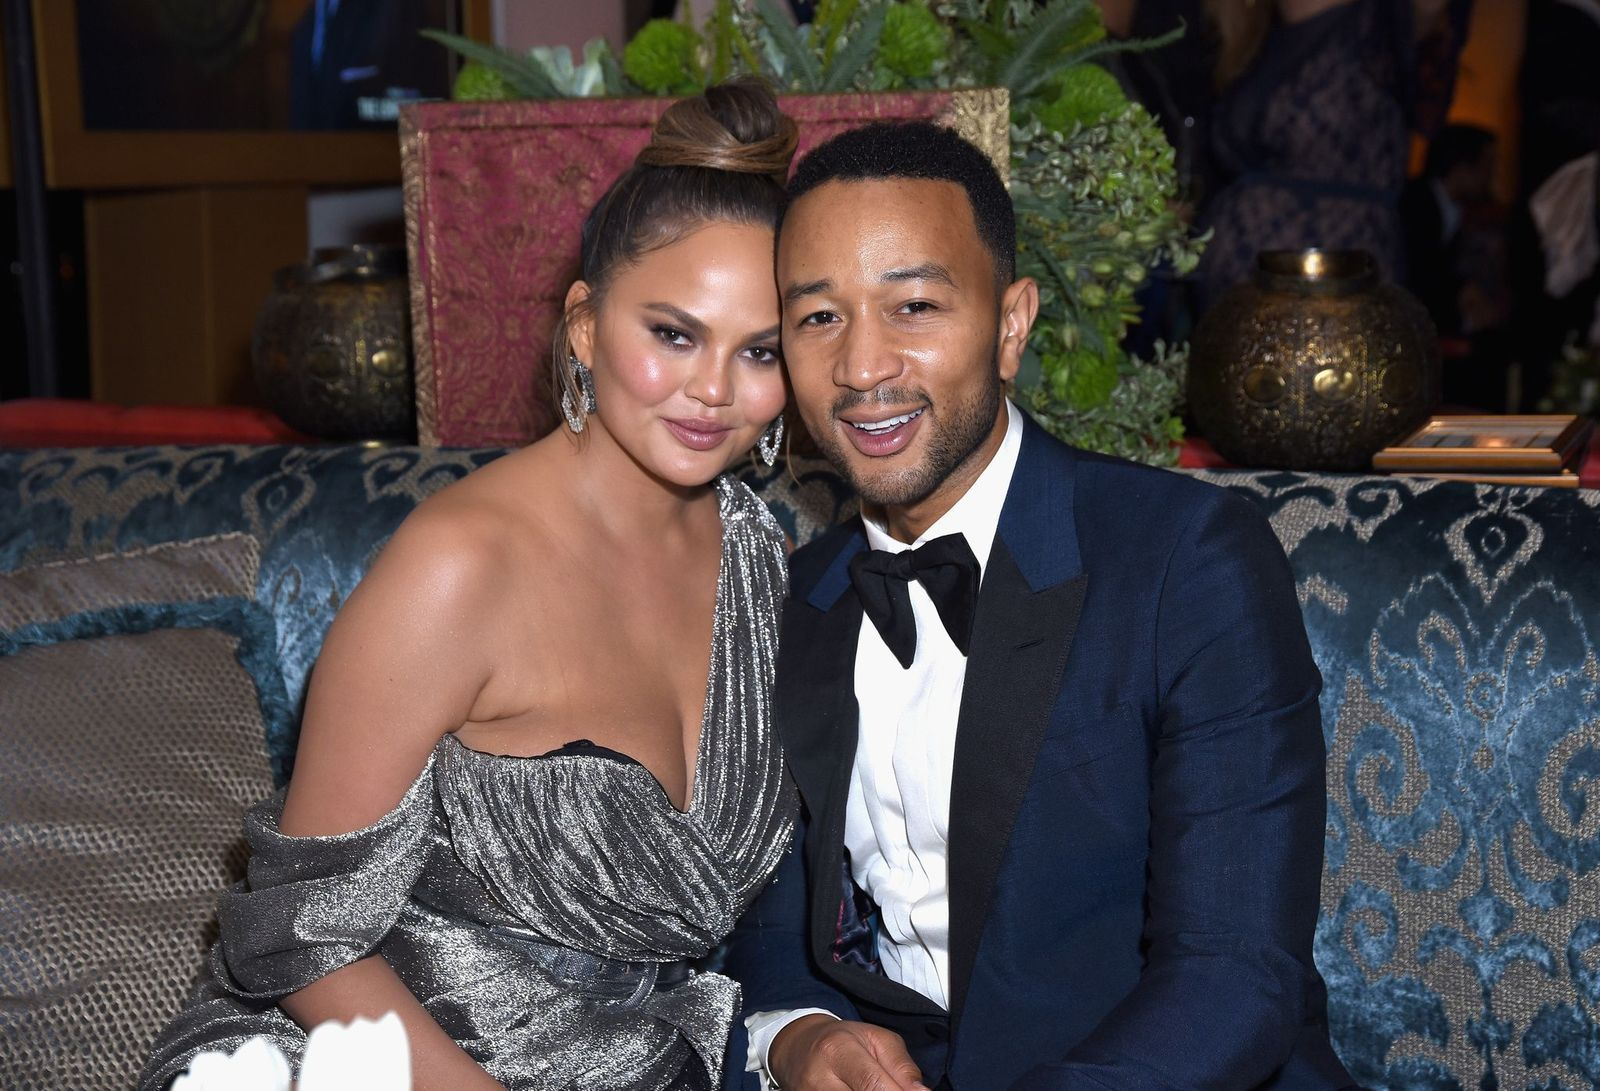 Chrissy Teigen and John Legend at Hulu's Emmy Party at Nomad Hotel on September 17, 2018 | Photo: Getty Images